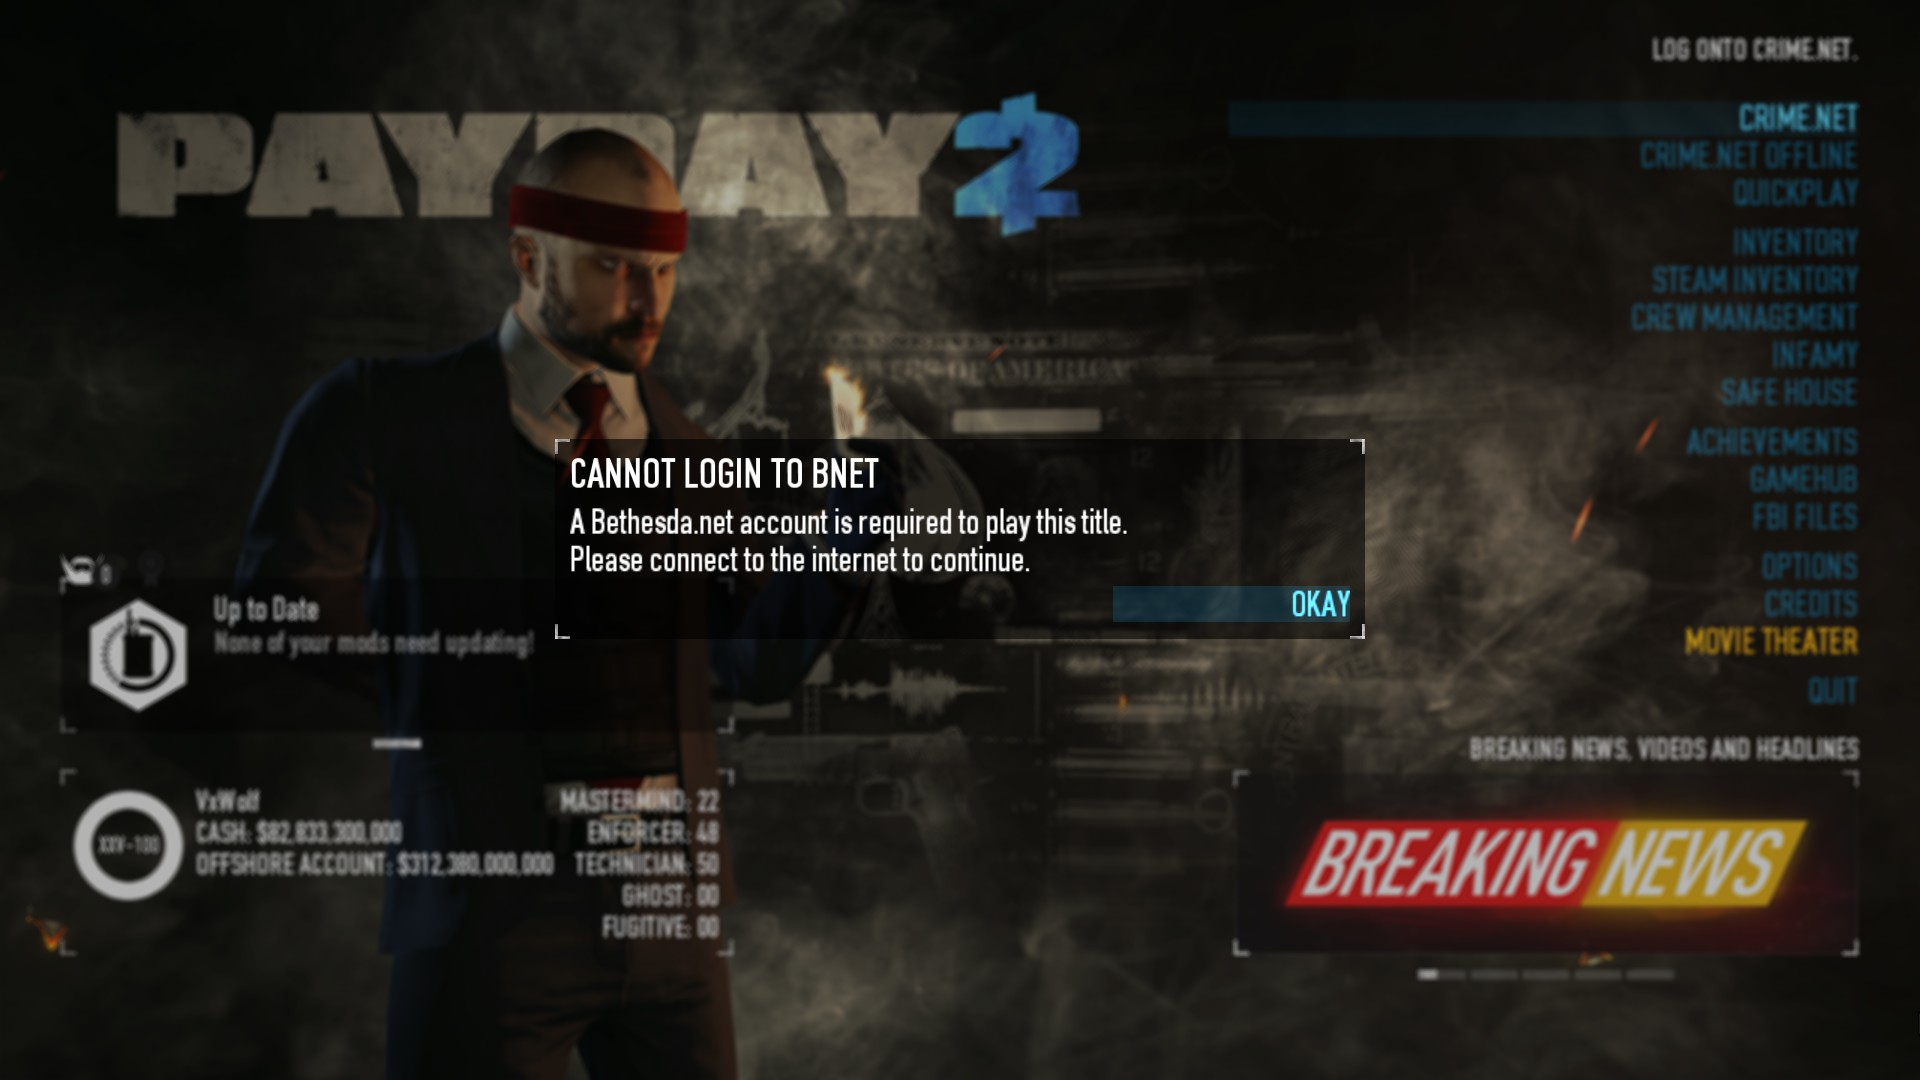 PAYDAY 2 Edition   A Bethesda Account Is Required   Know